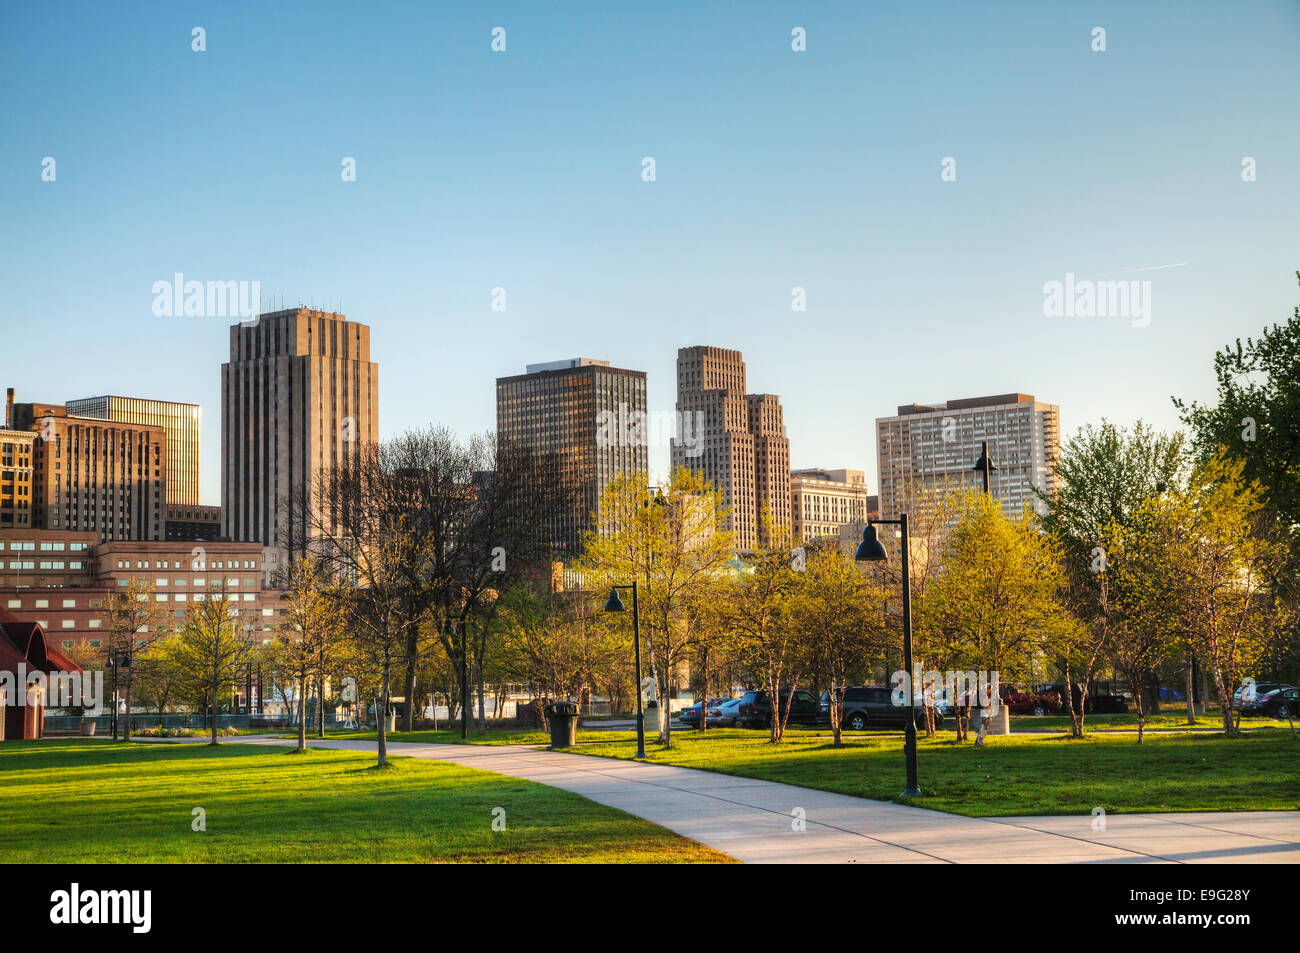 Downtown of St. Paul, MN - Stock Image